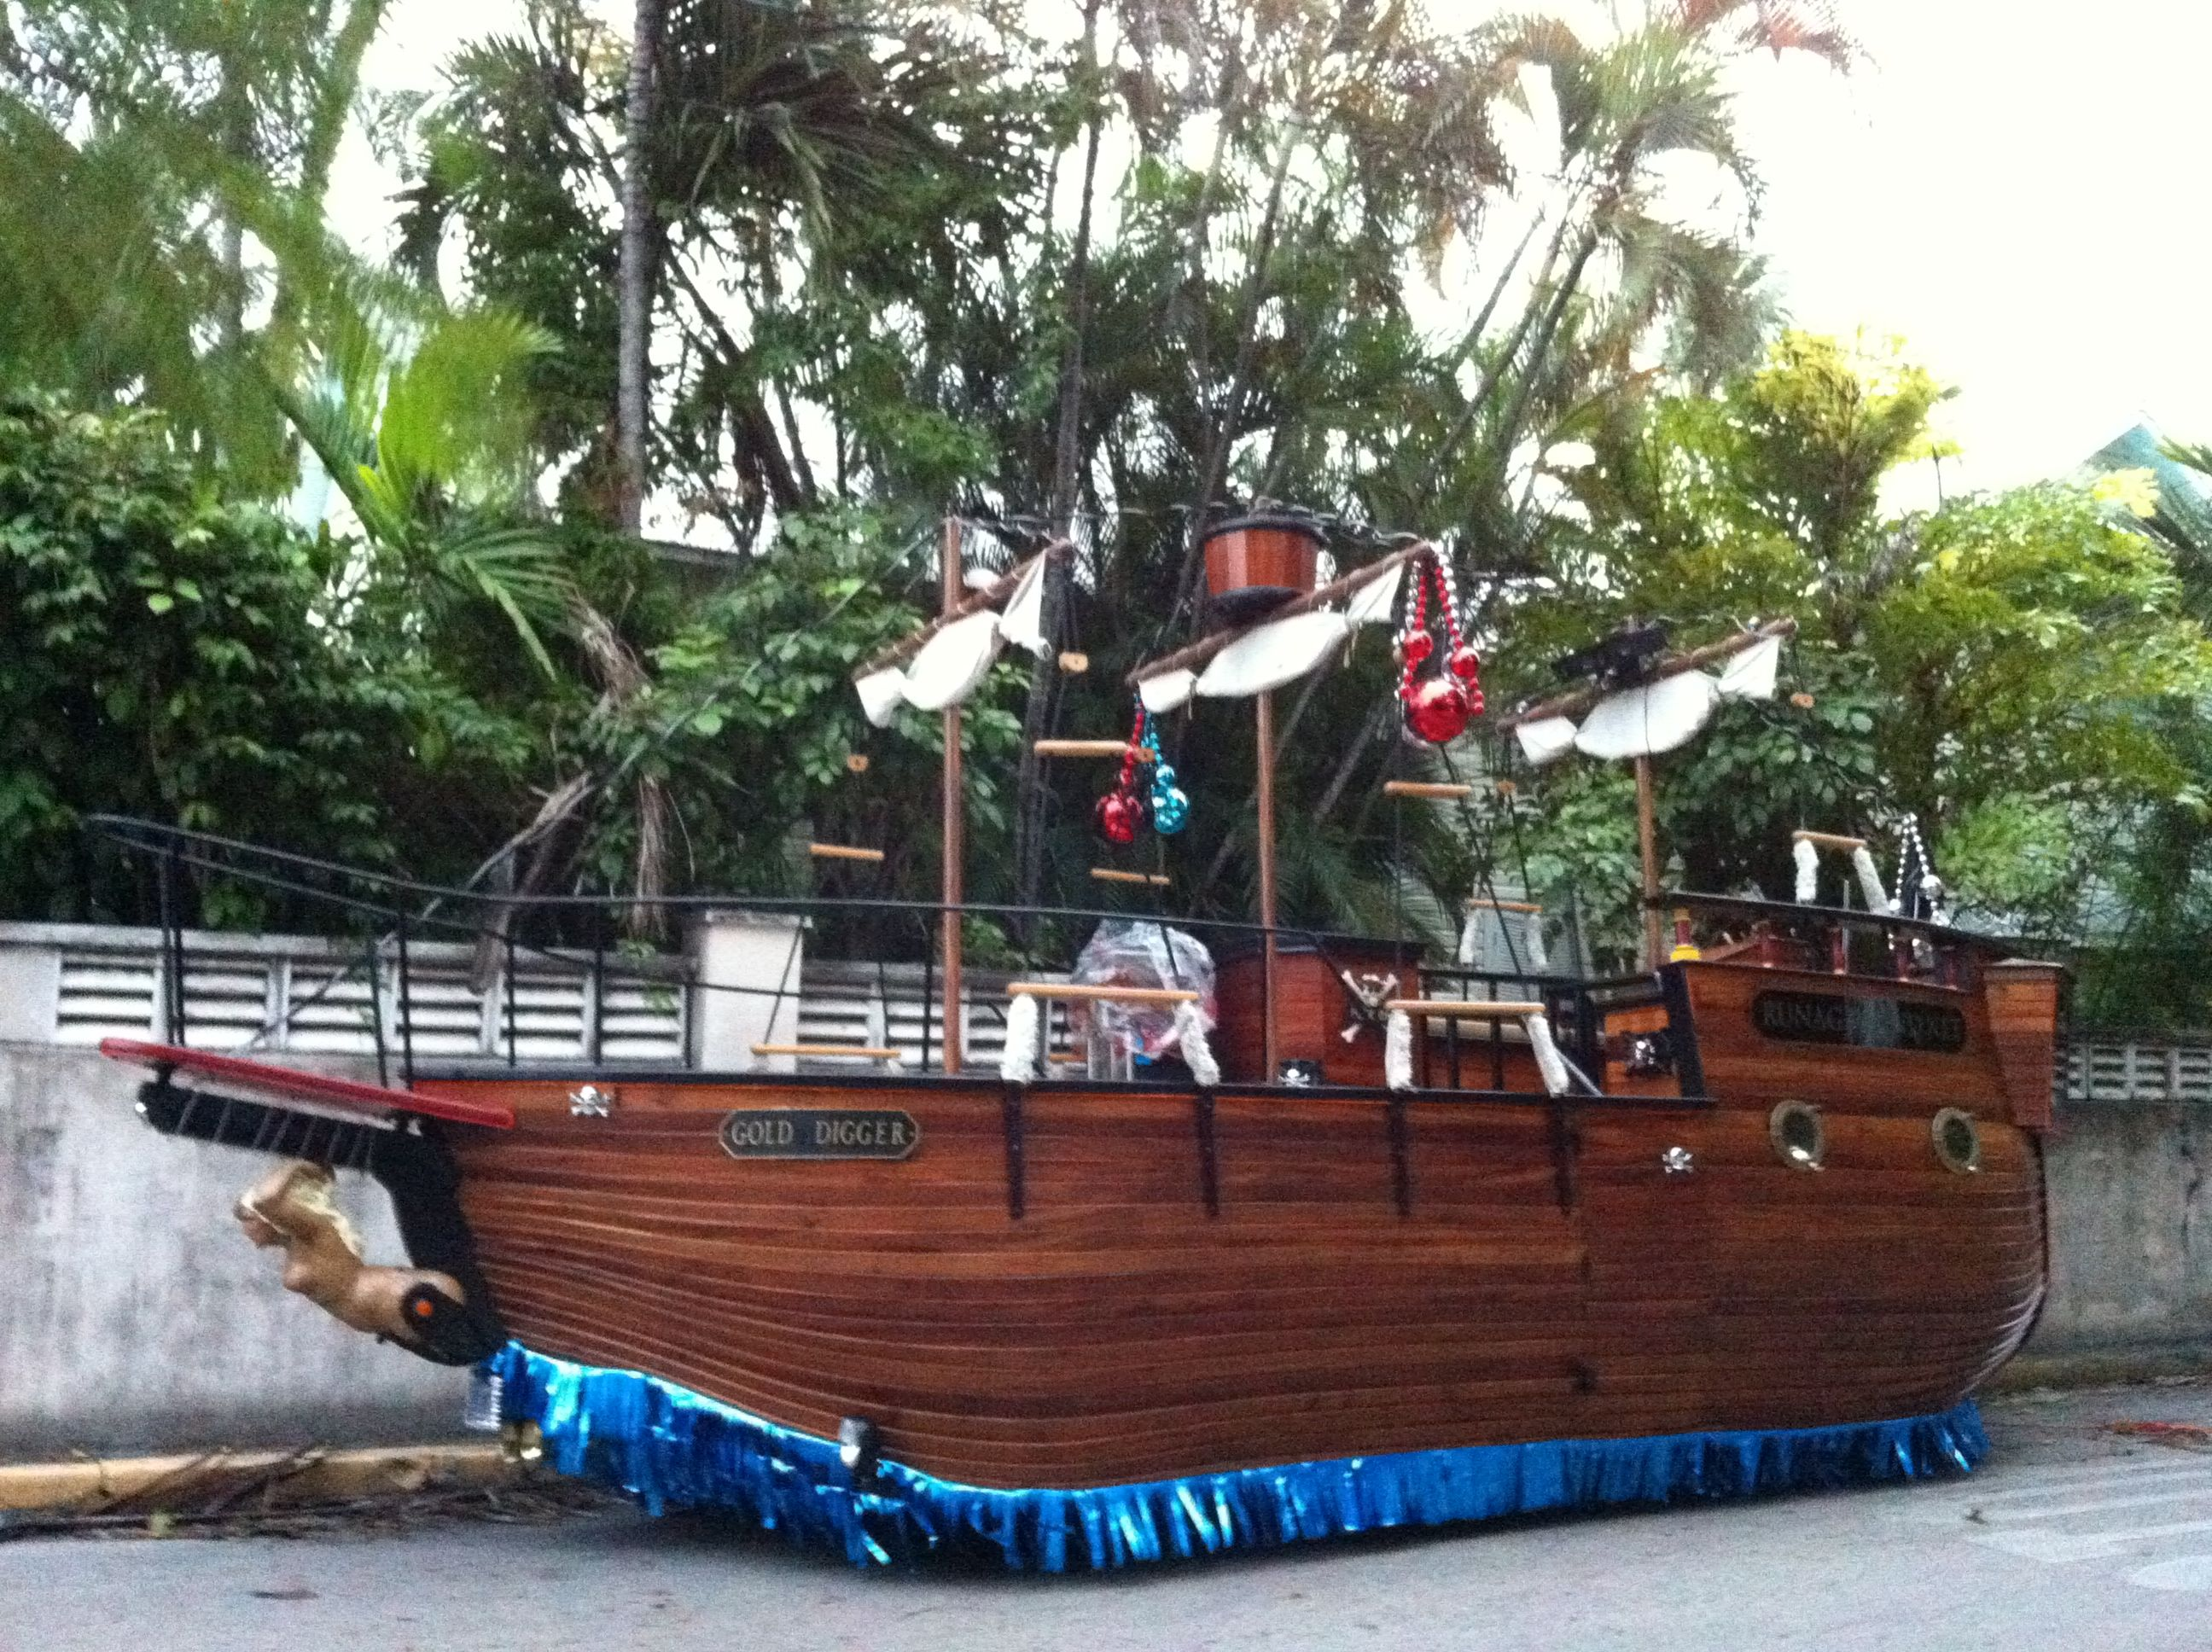 A pirates ship with wheels for Fantasy Fest Parade